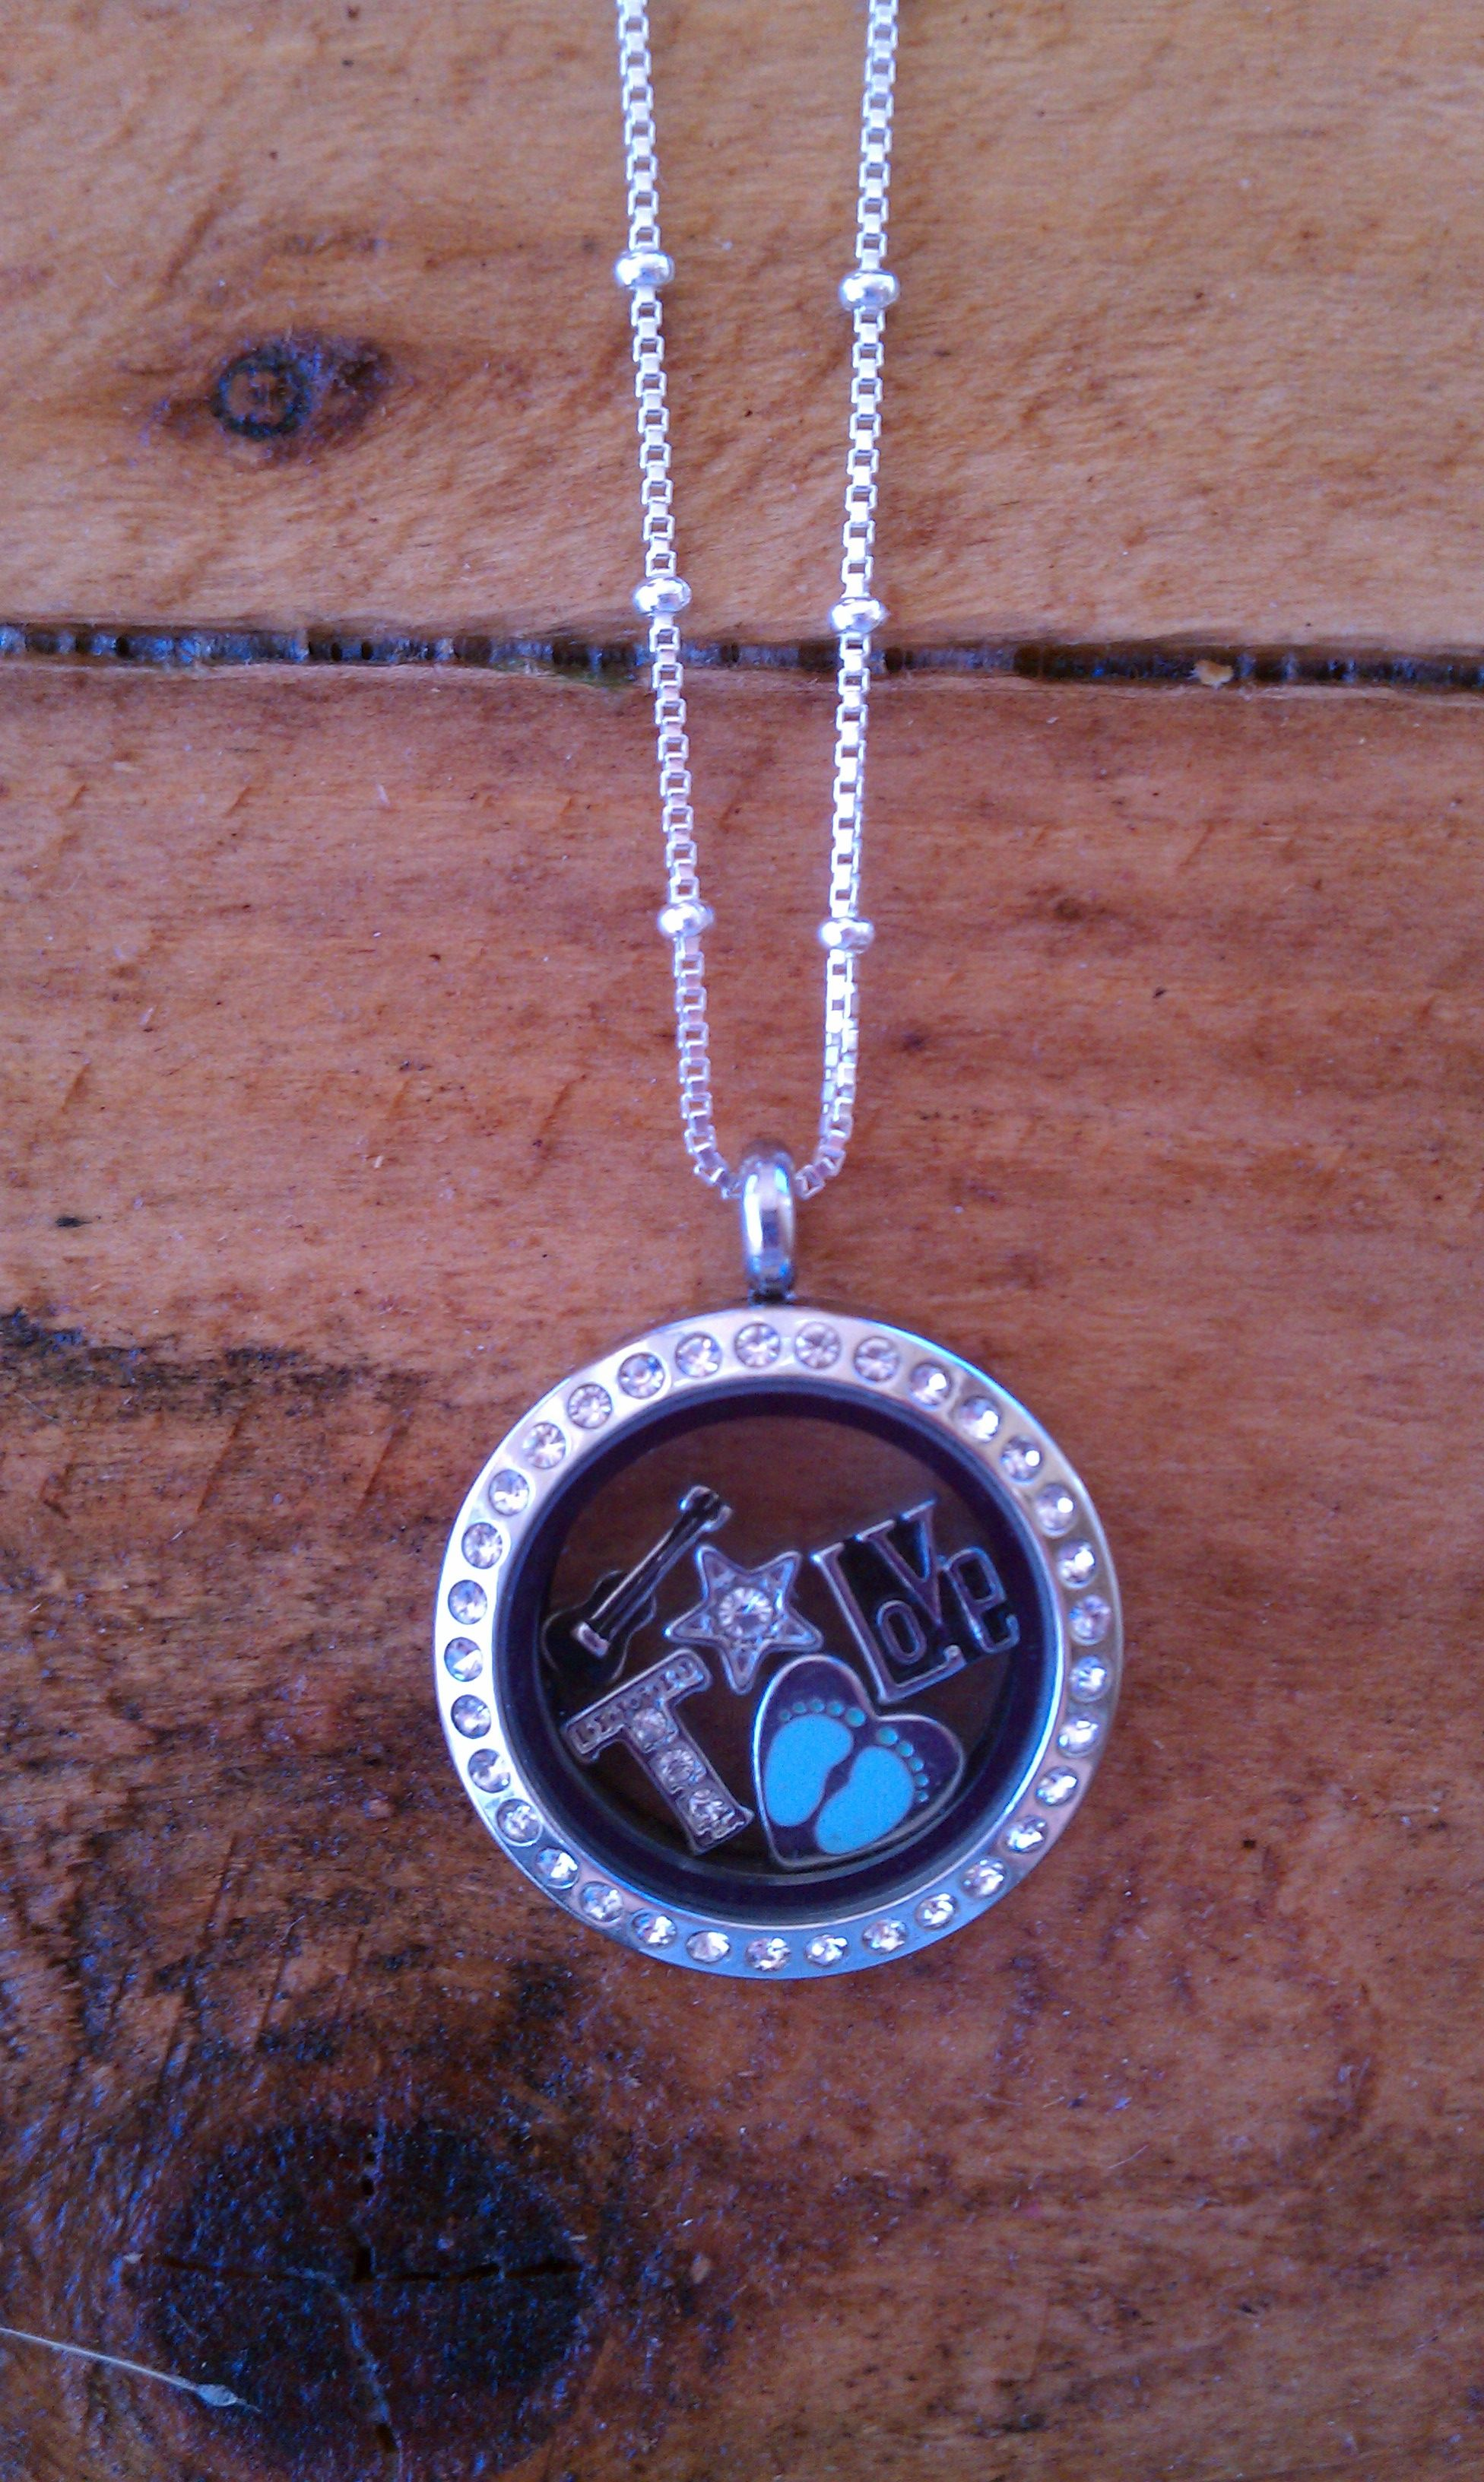 connected to new person someone you each a message and from custom keep gift how bead maui it resonates show locket if bracelet fotor holds wood with lockets or is wear charm valuable products their